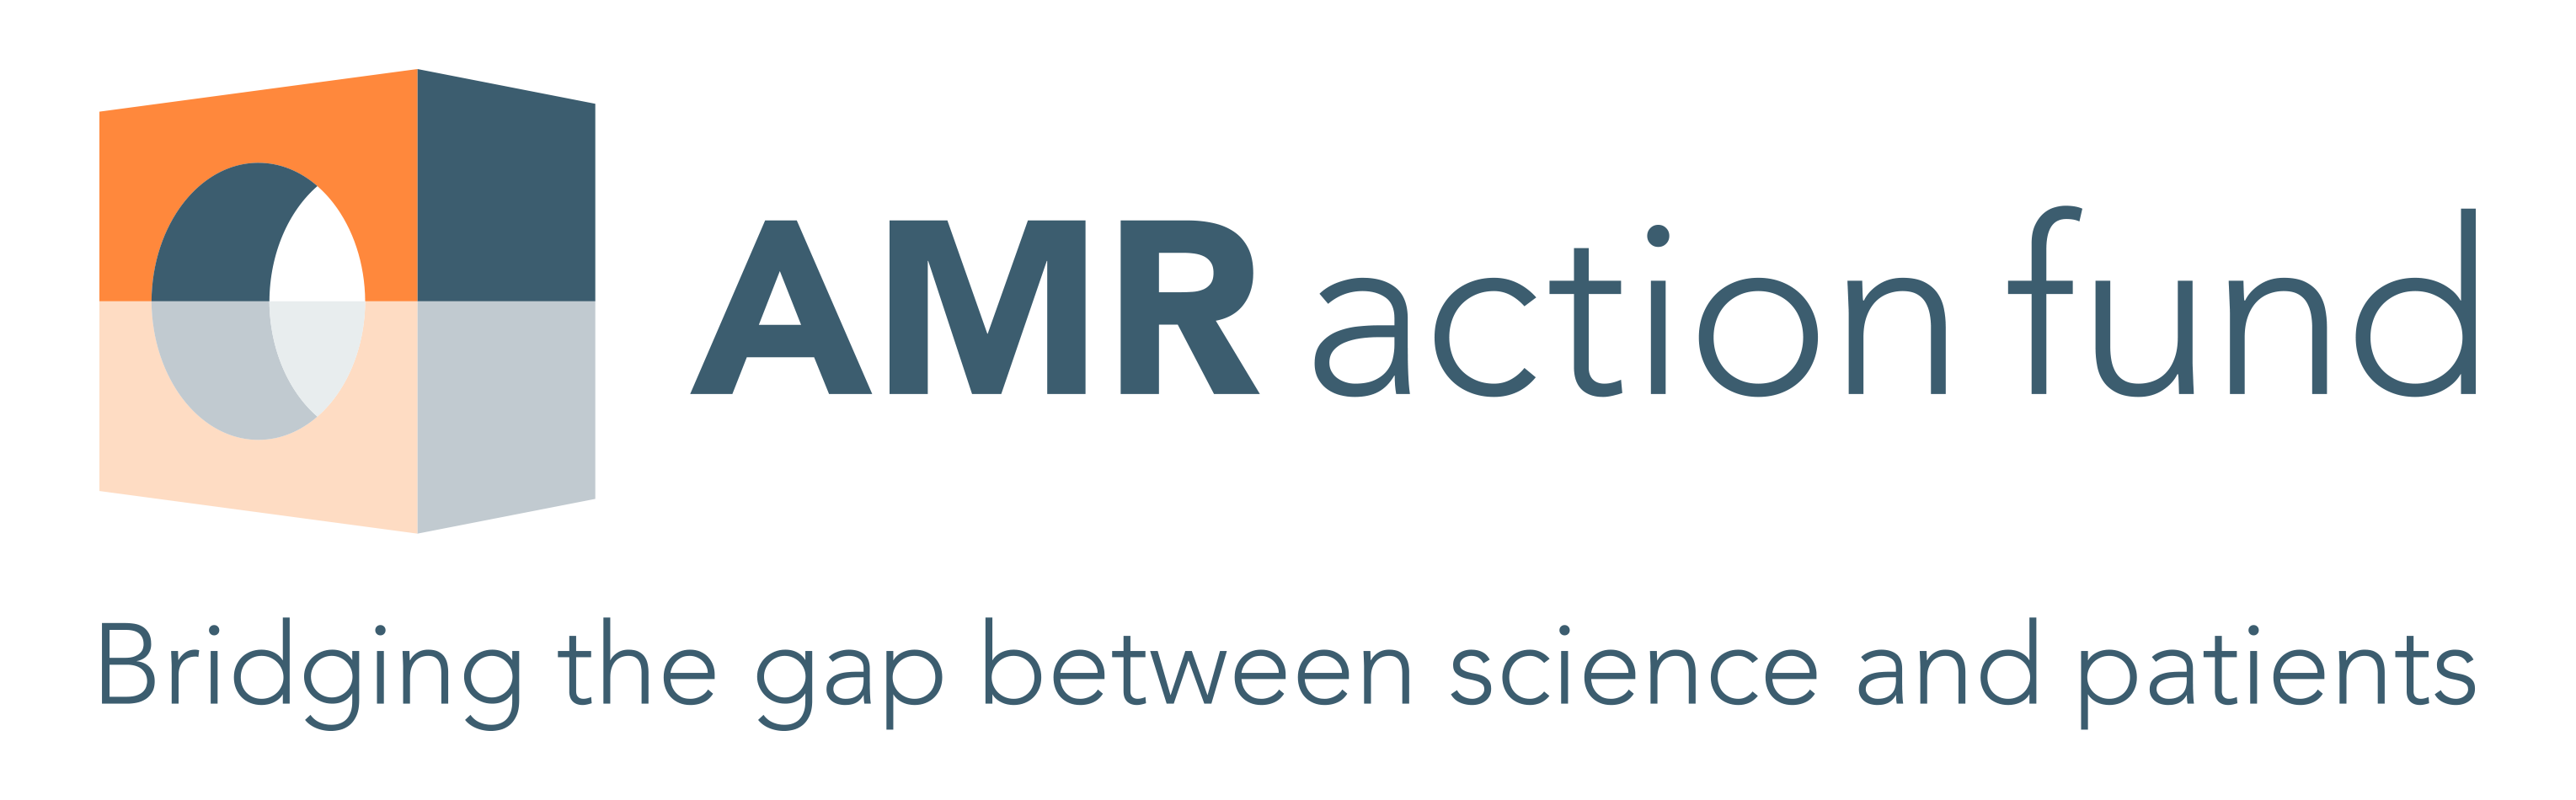 New initiative to bridge the gap on antimicrobial innovation